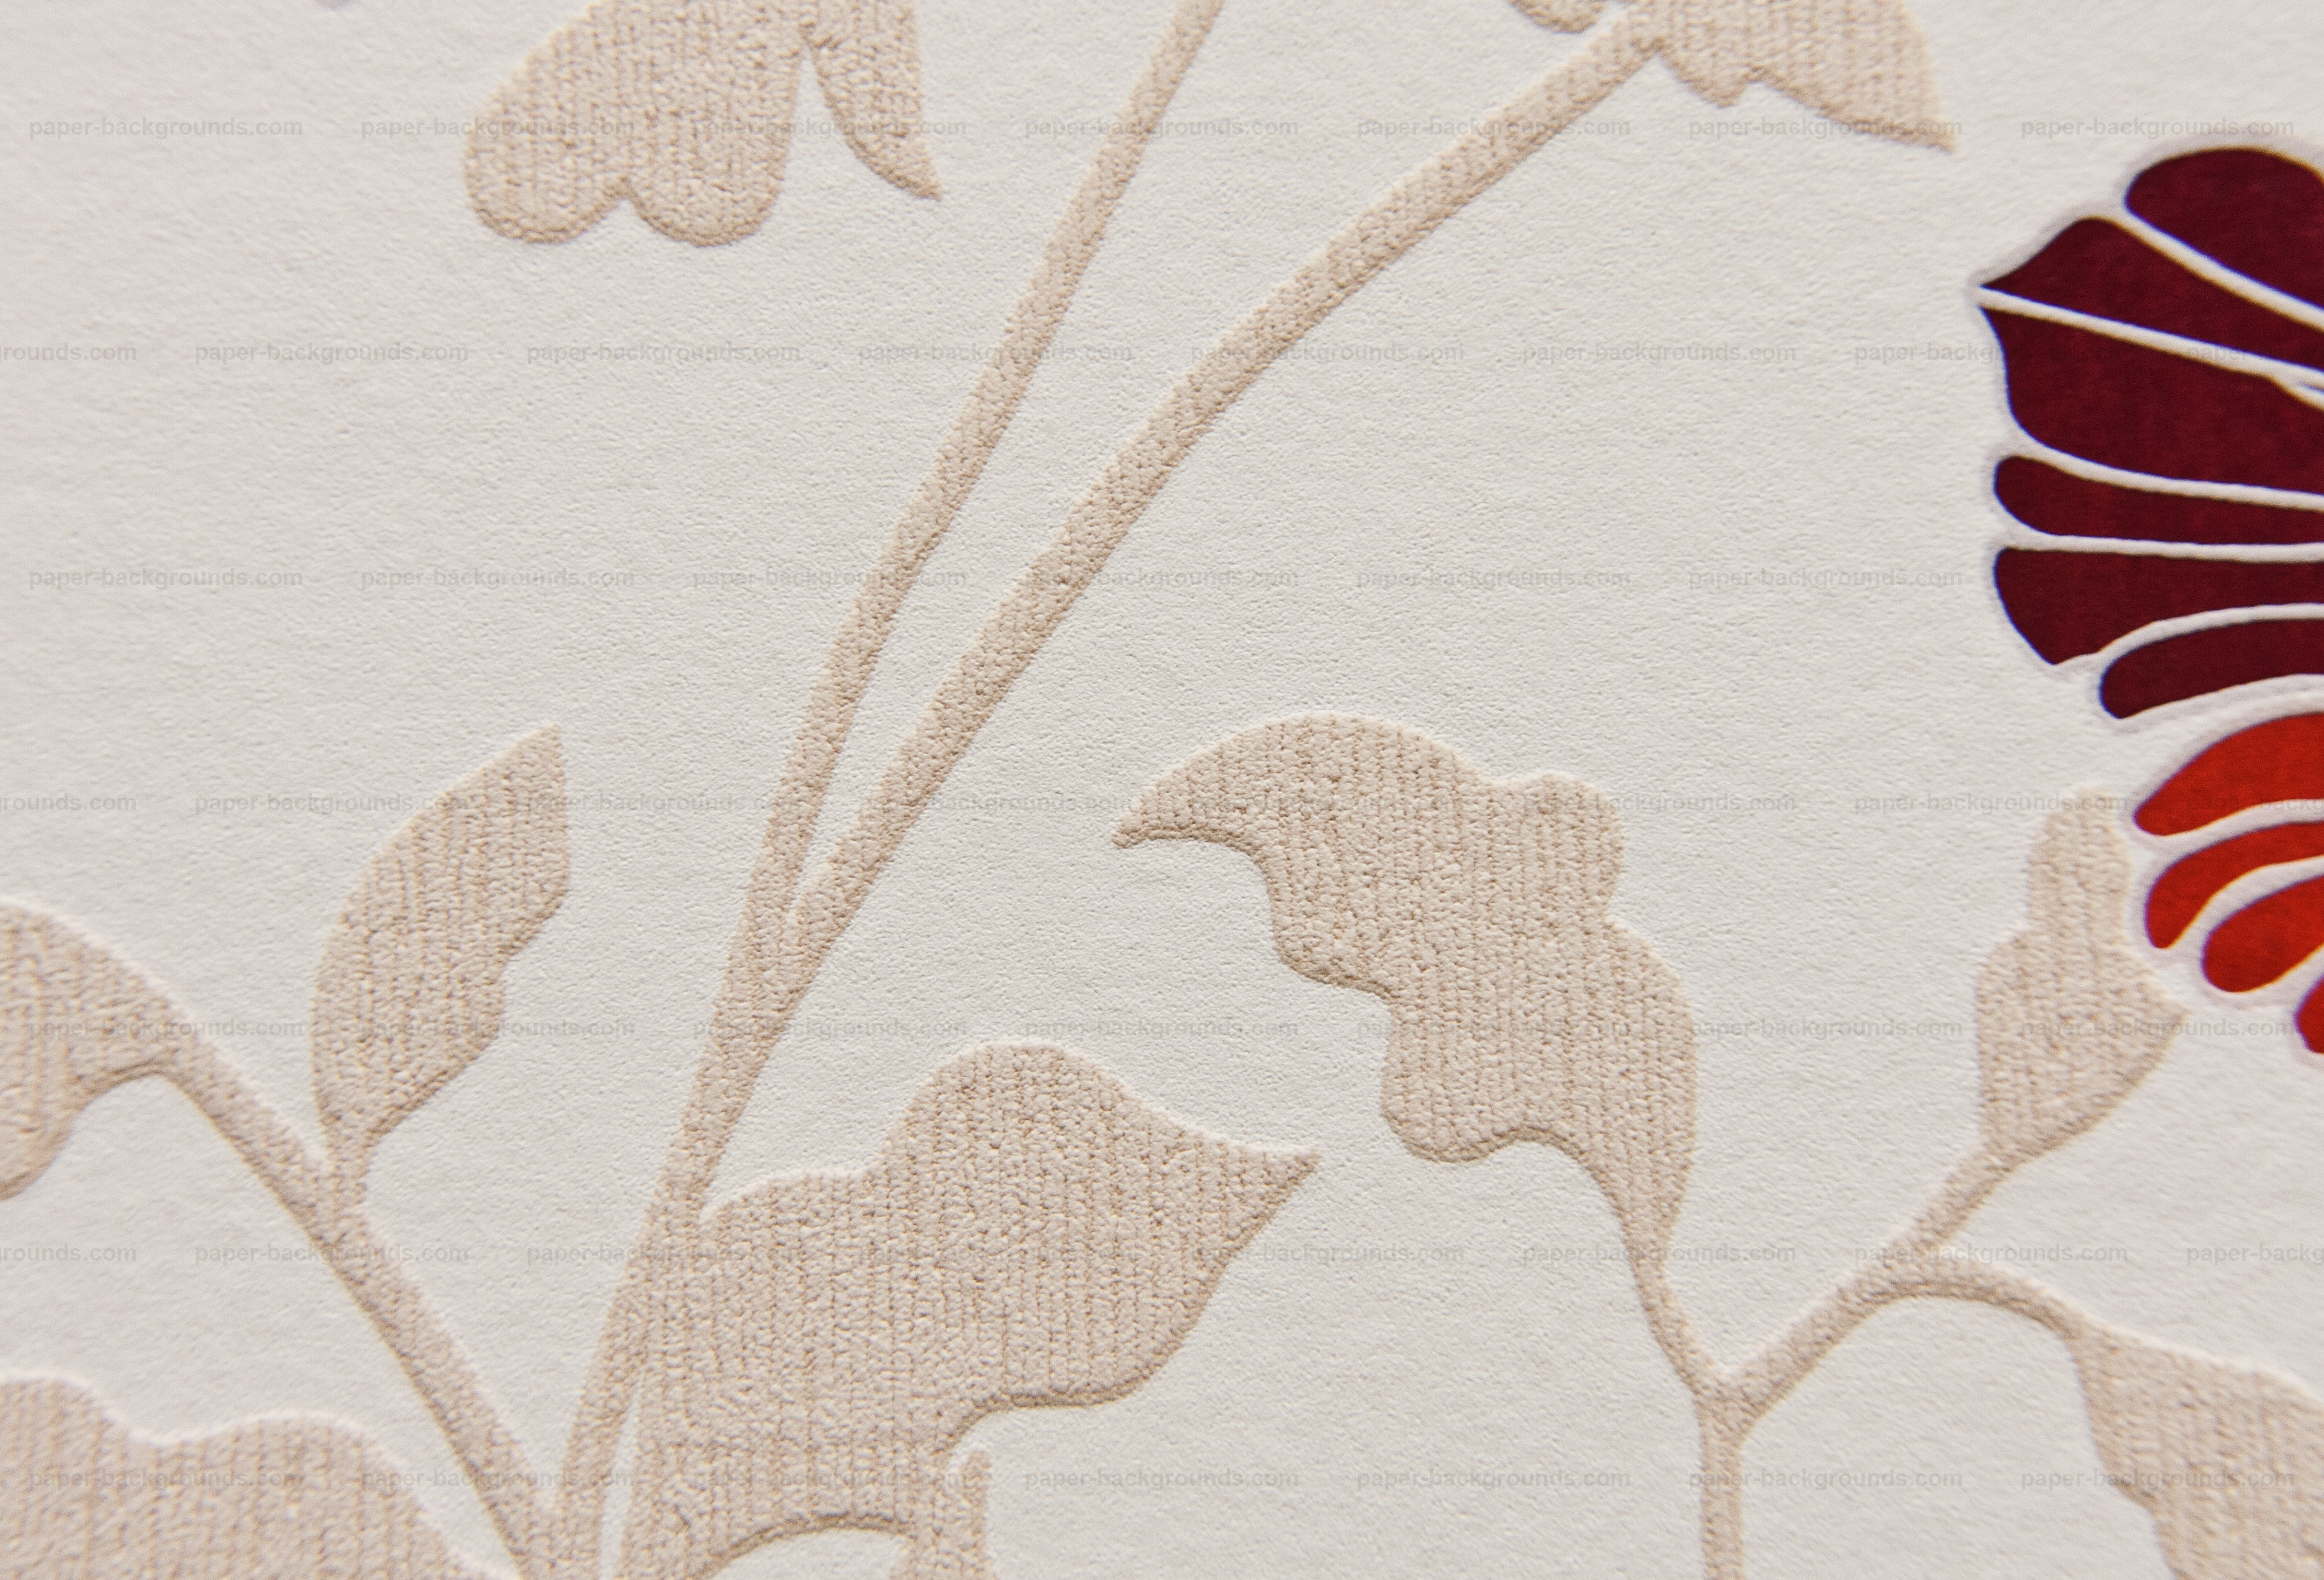 Paper Backgrounds Abstract White Wall Texture Floral Design High - Texture design on wall